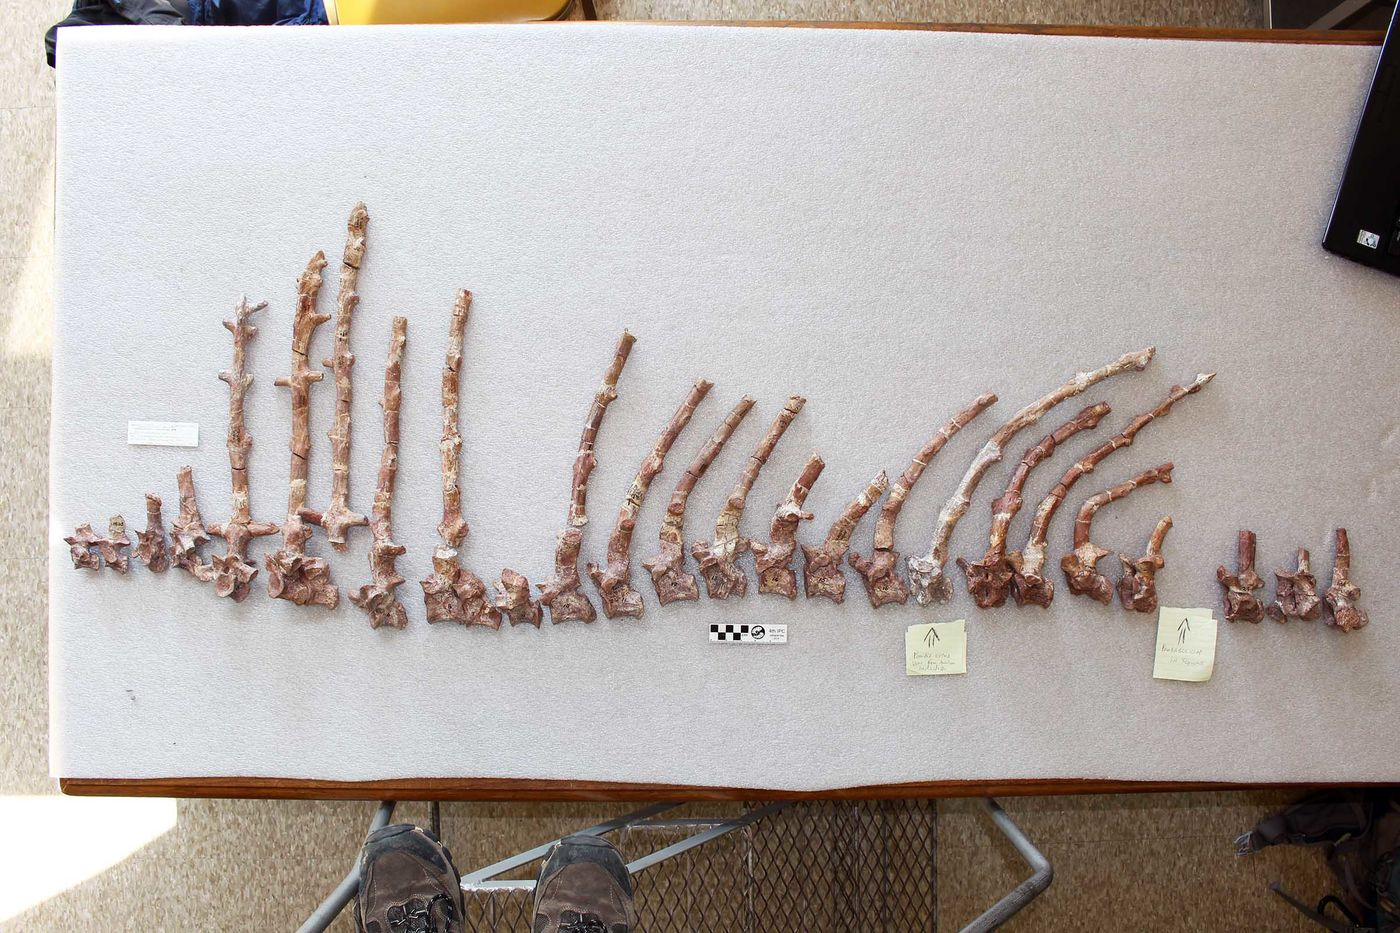 Row of bones laid out on foam on top of a table. The bones are pinkish and grayish in color, and range in length, generally tall near the left and smaller and more covered toward the right. Shoes are visible at the bottom of the photo, showing that the photographer is standing on a ladder to take the photo.